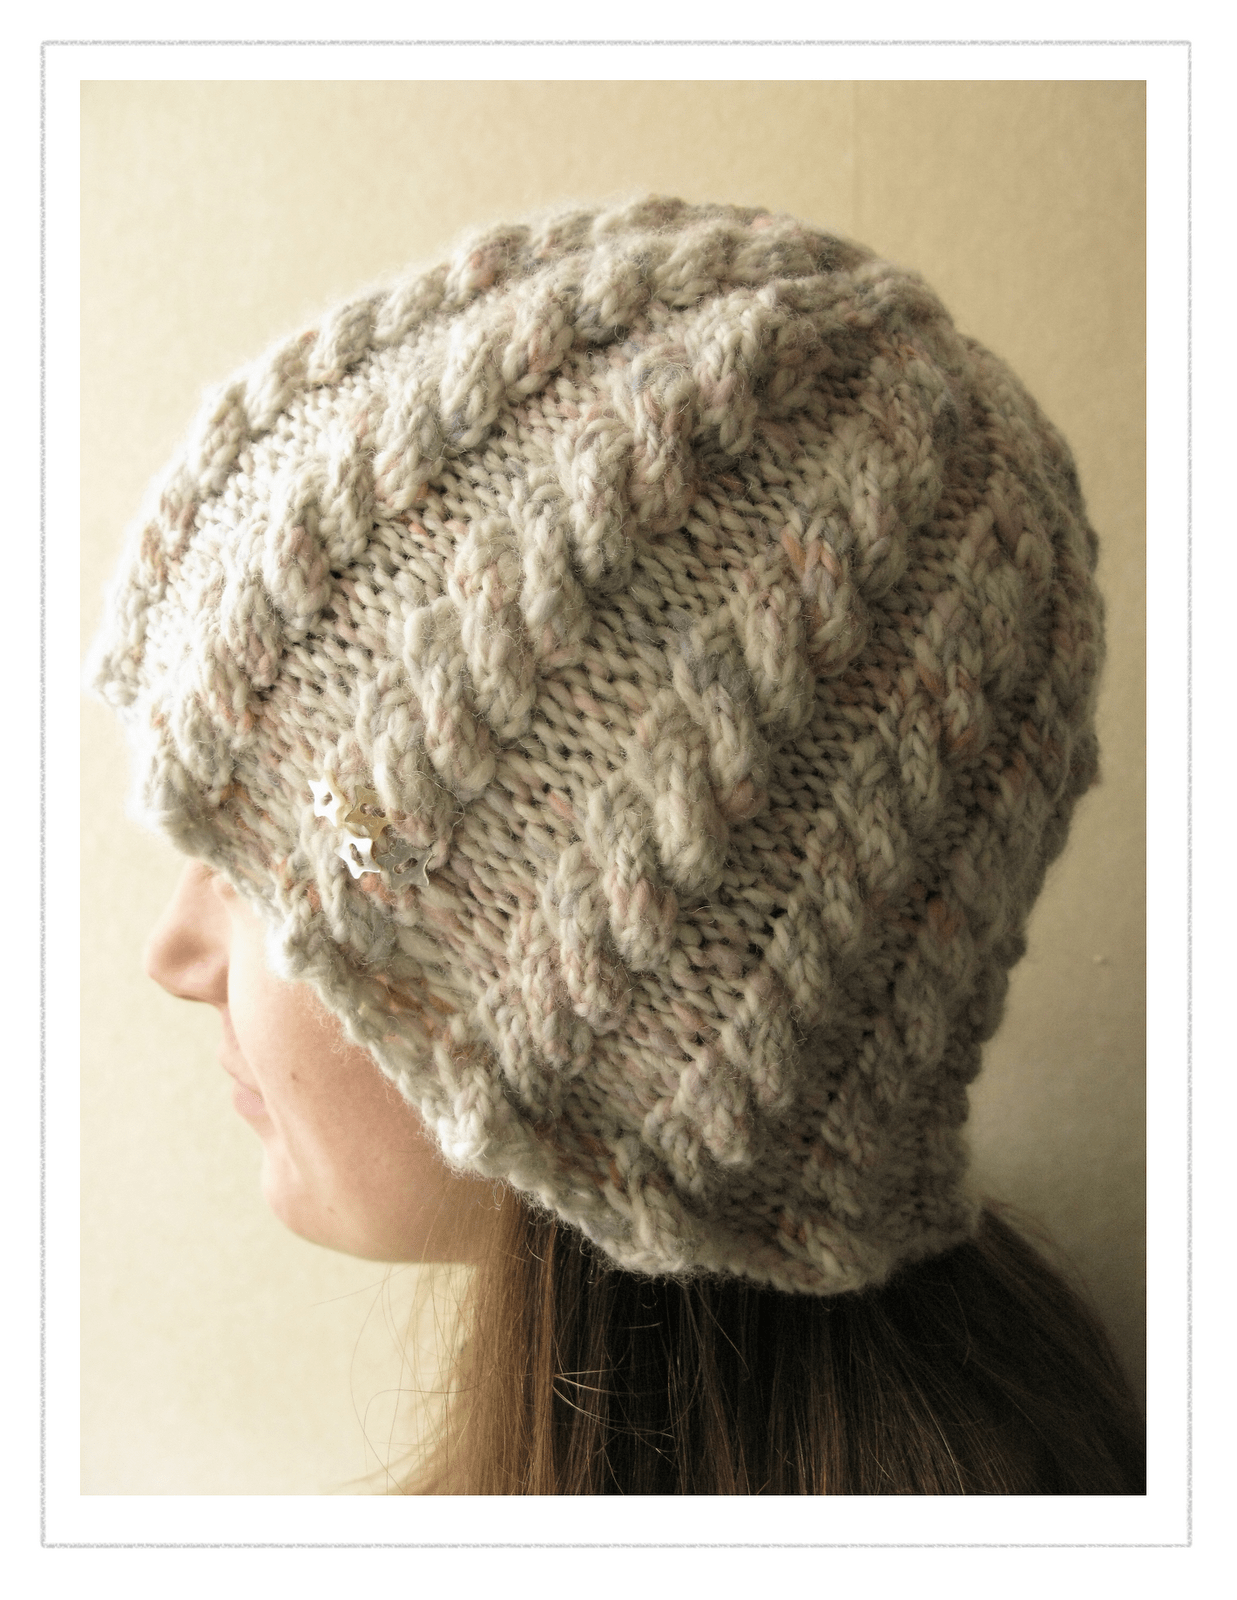 Handspun Star Hat Cable Knitting Pattern